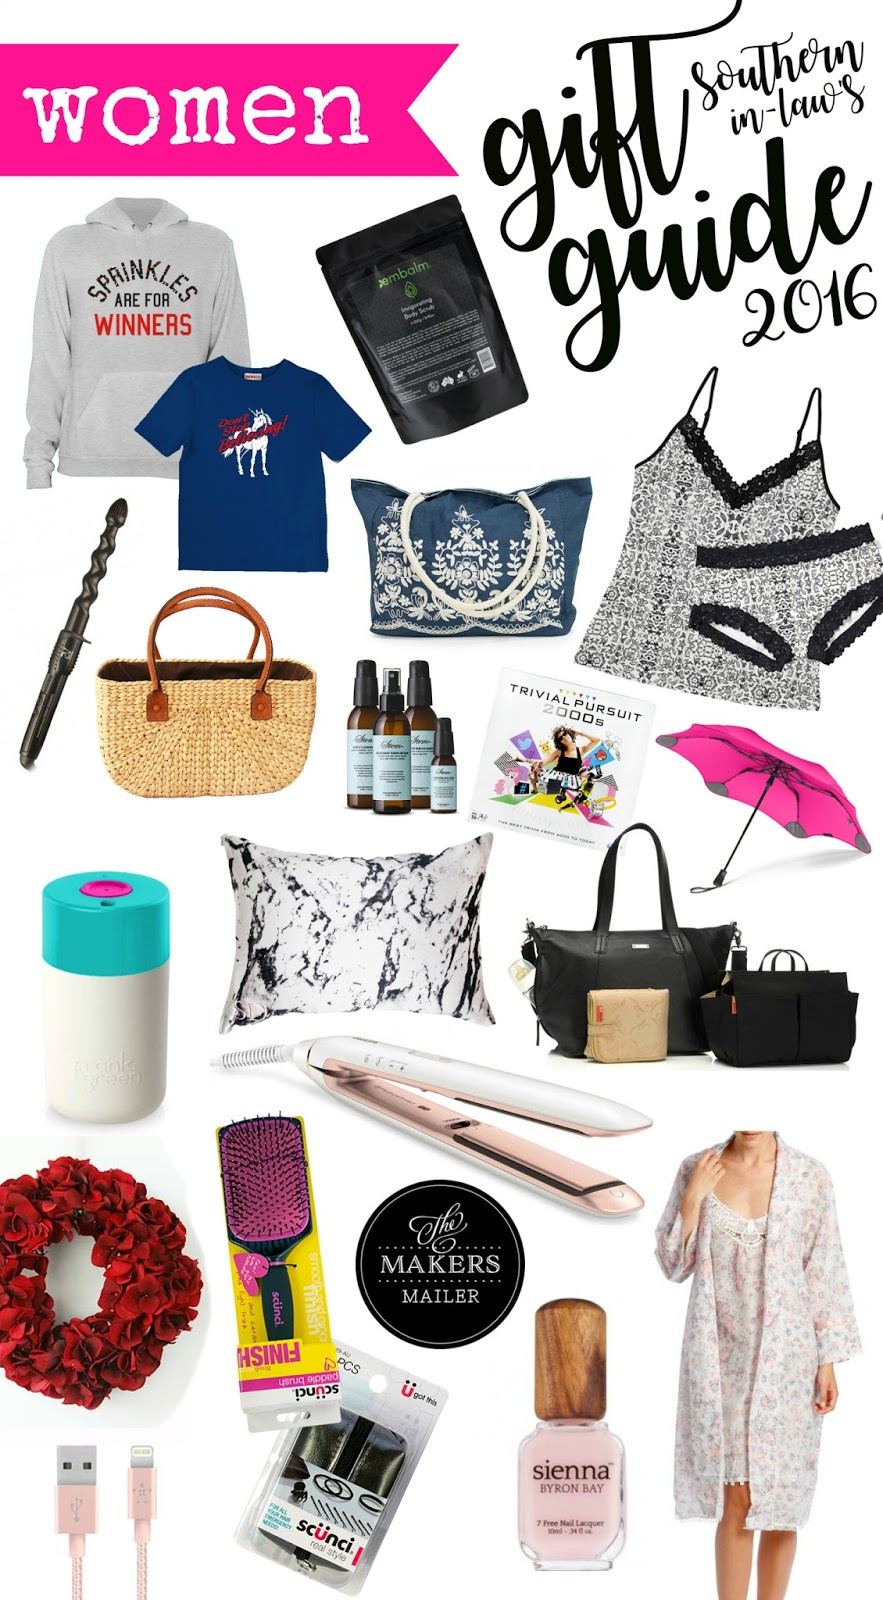 Best ideas about Girlfriend Christmas Gift Ideas . Save or Pin Southern In Law 2016 Women s Christmas Gift Guide Now.